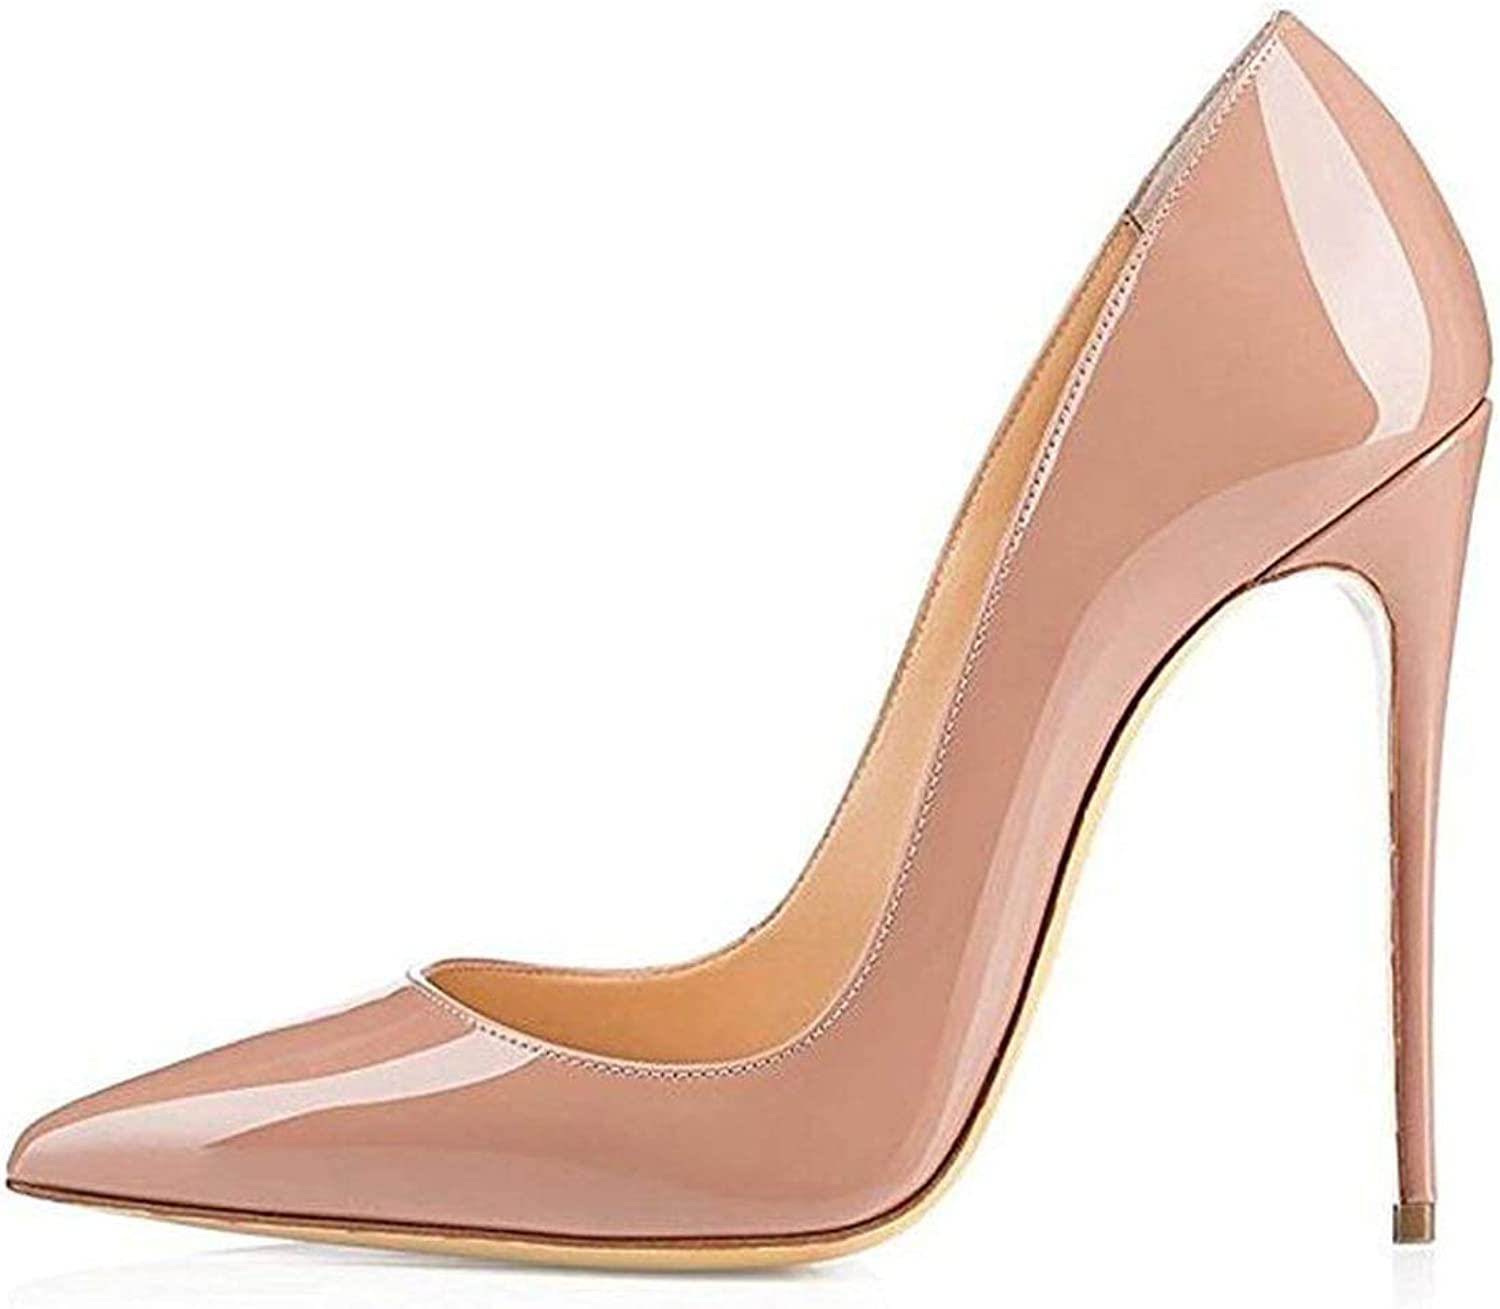 Hhhh High Heels Women Pumps 12cm Sexy Pointed Toe Wedding Party shoes Black Nude Heels Stiletto Plus Size